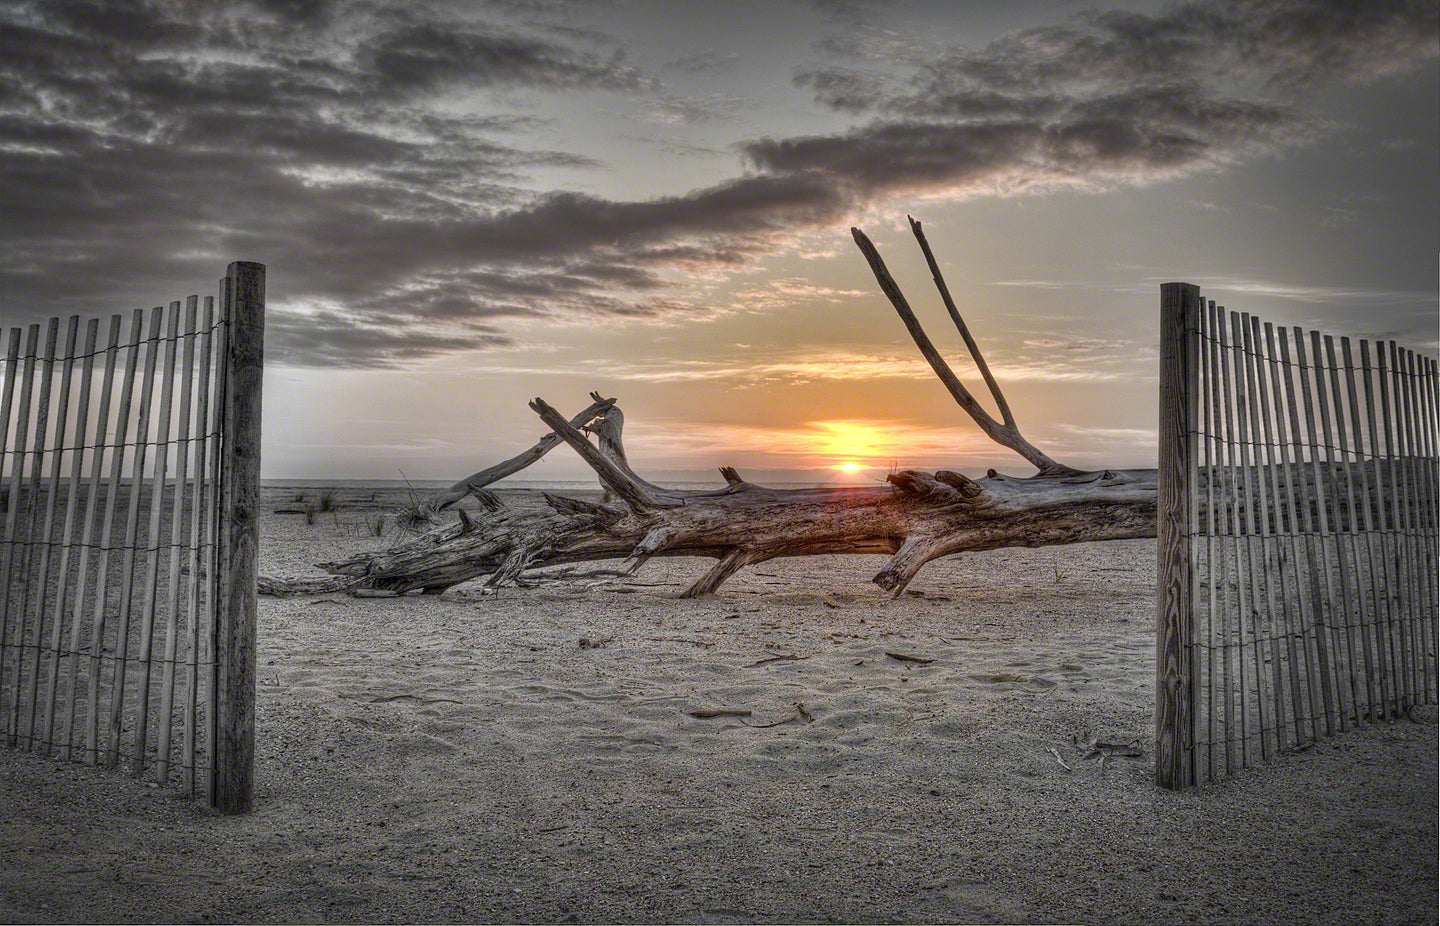 A photo of driftwood at sunrise on Tybee Island, Georgia